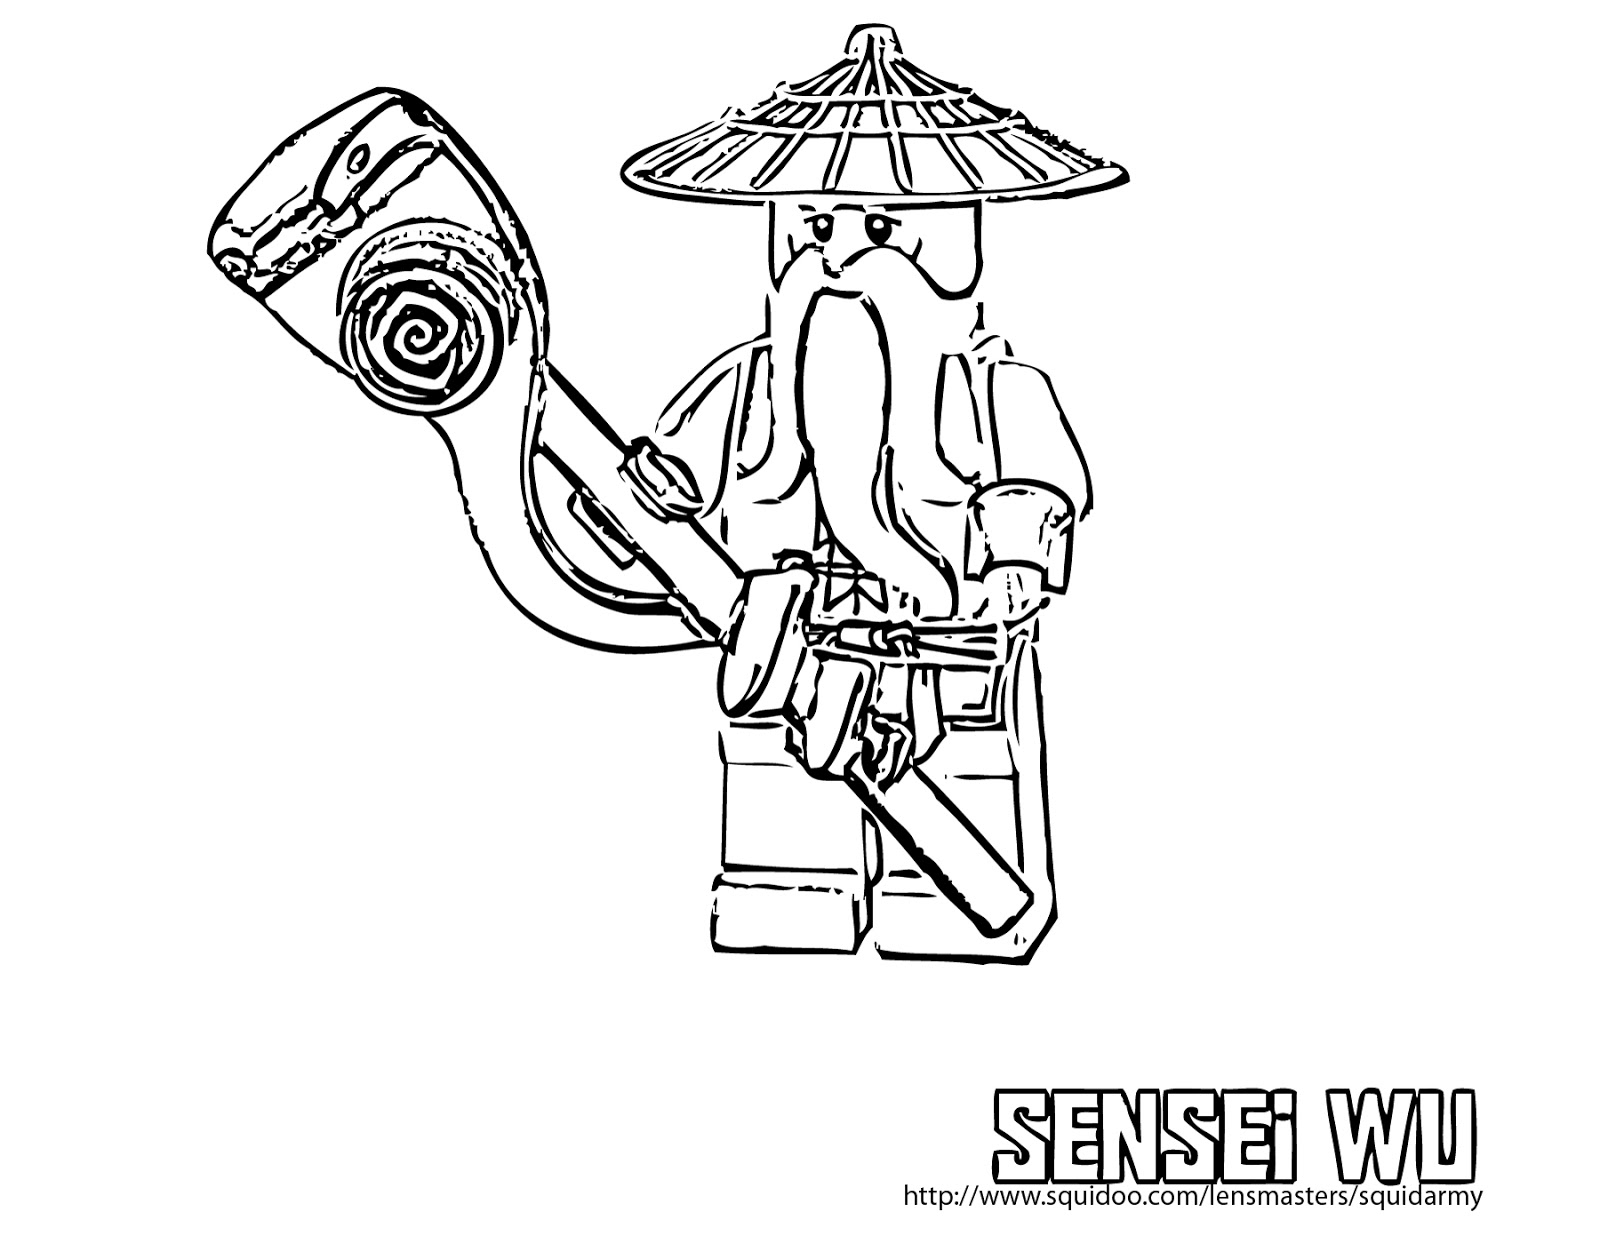 Show me more o go ninjago colouring pages